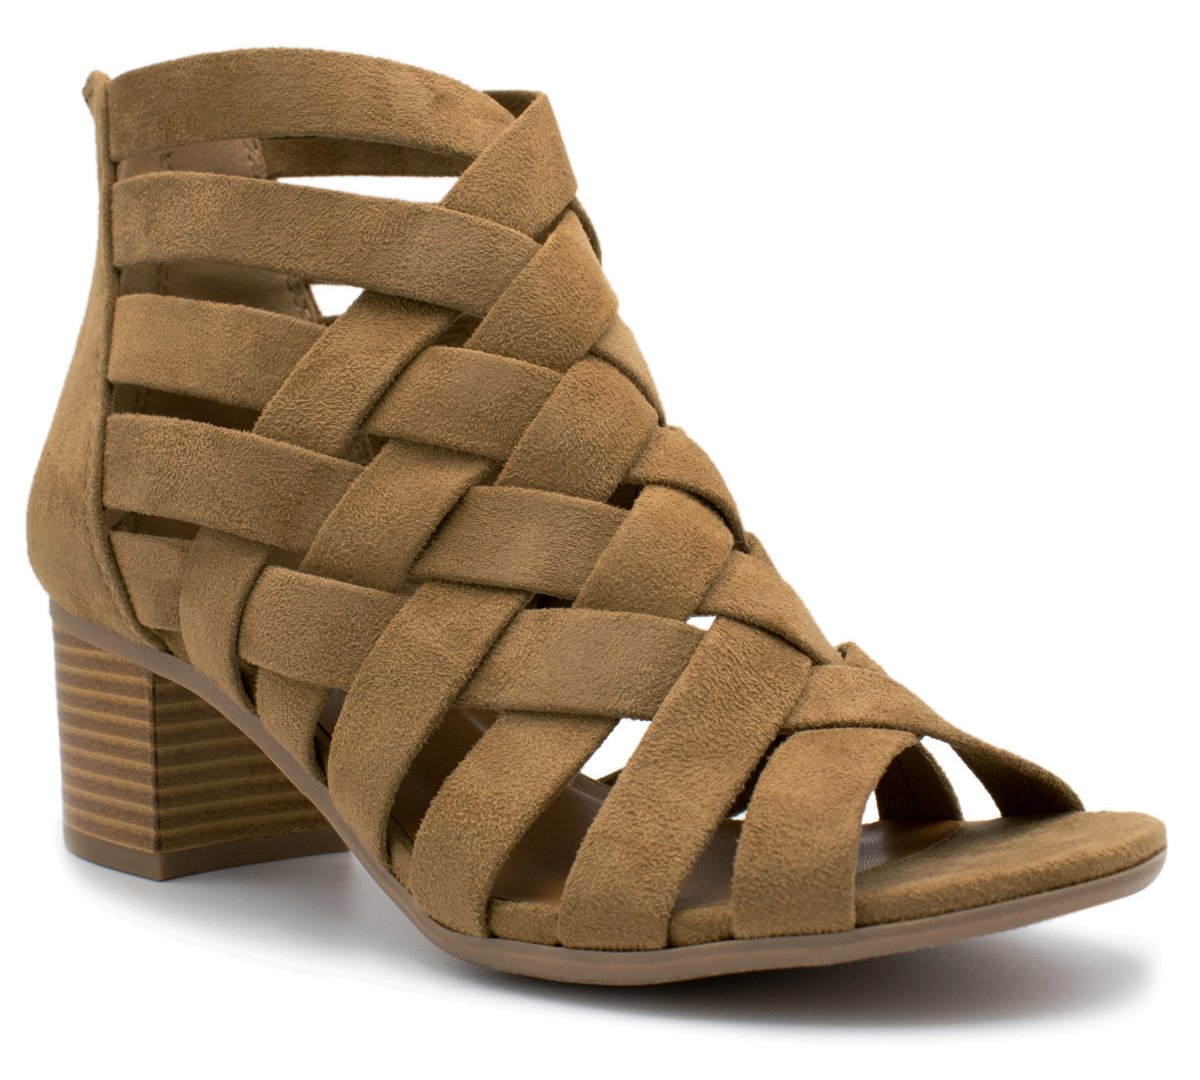 MVE Shoes Dress Sandal Chunky Heel Over Toe & Ankle Wrap Tie Front Strap Natural 8